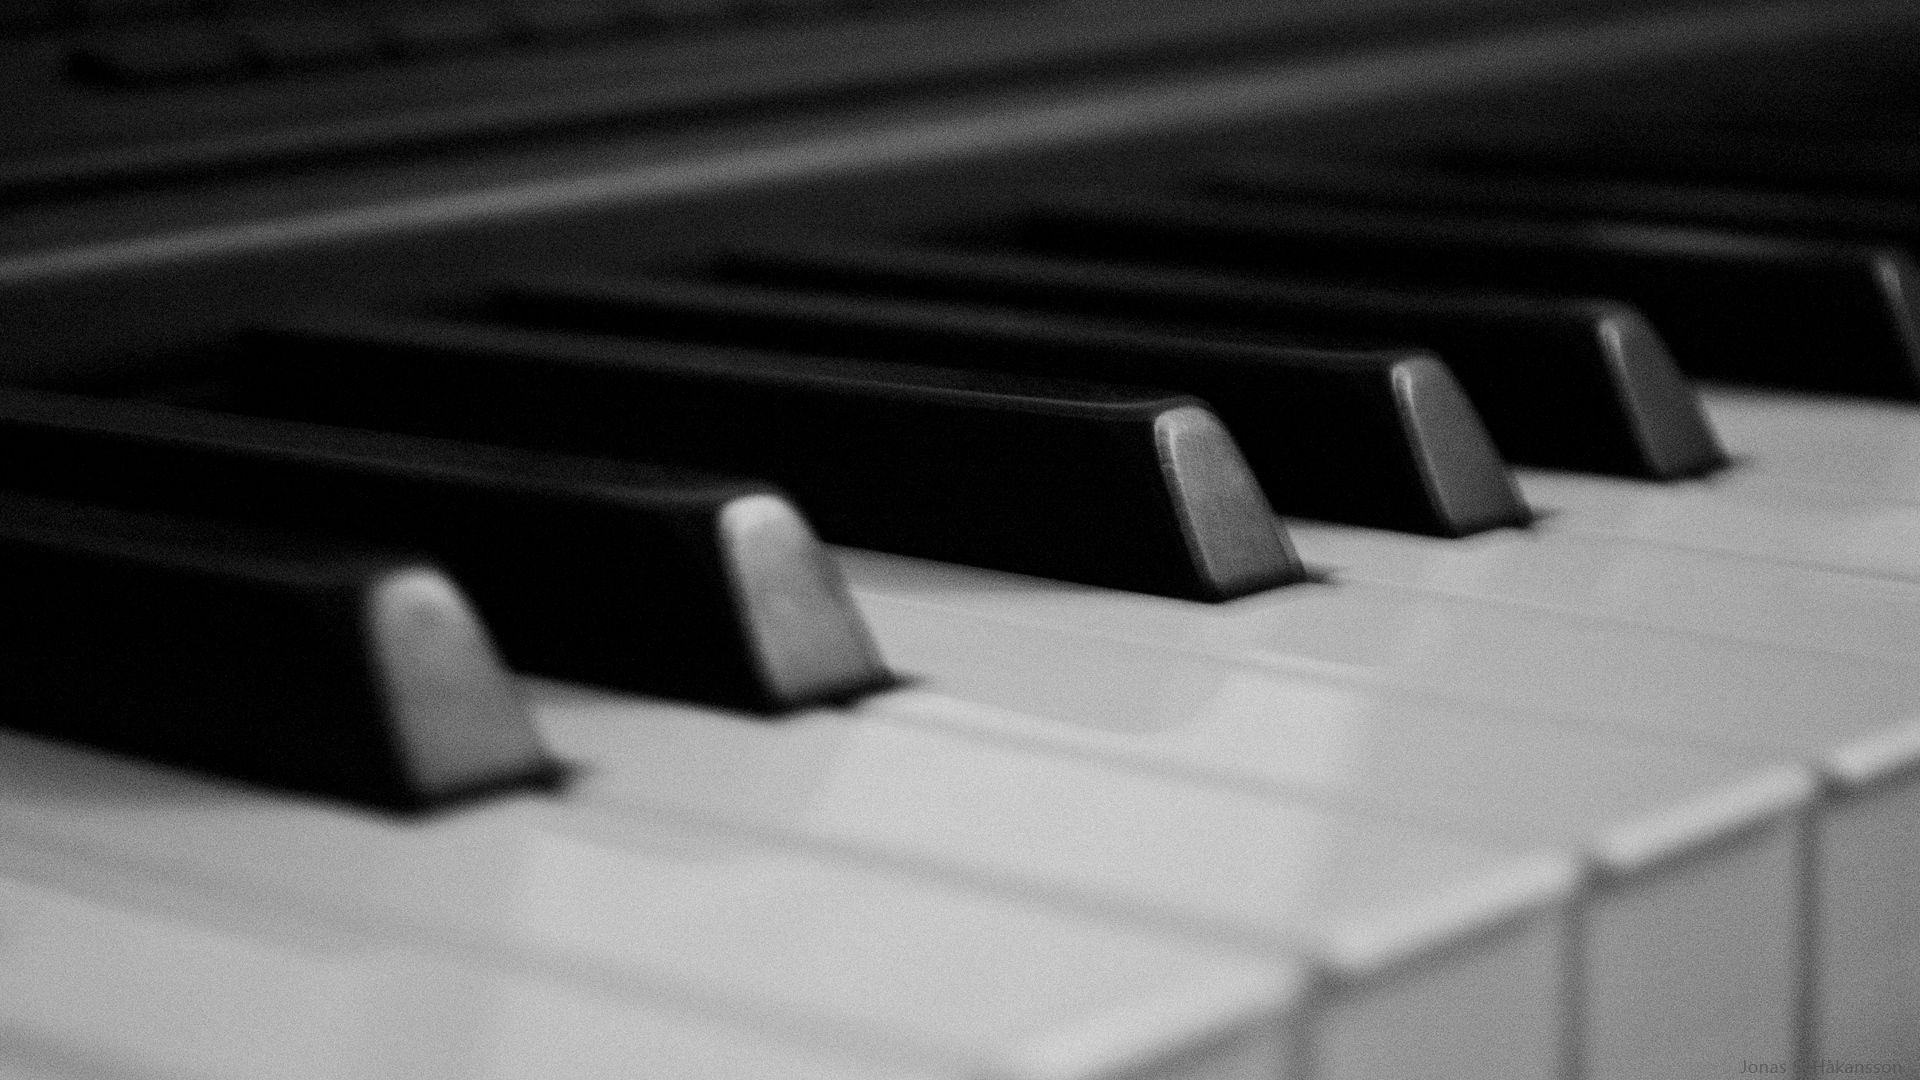 image of piano